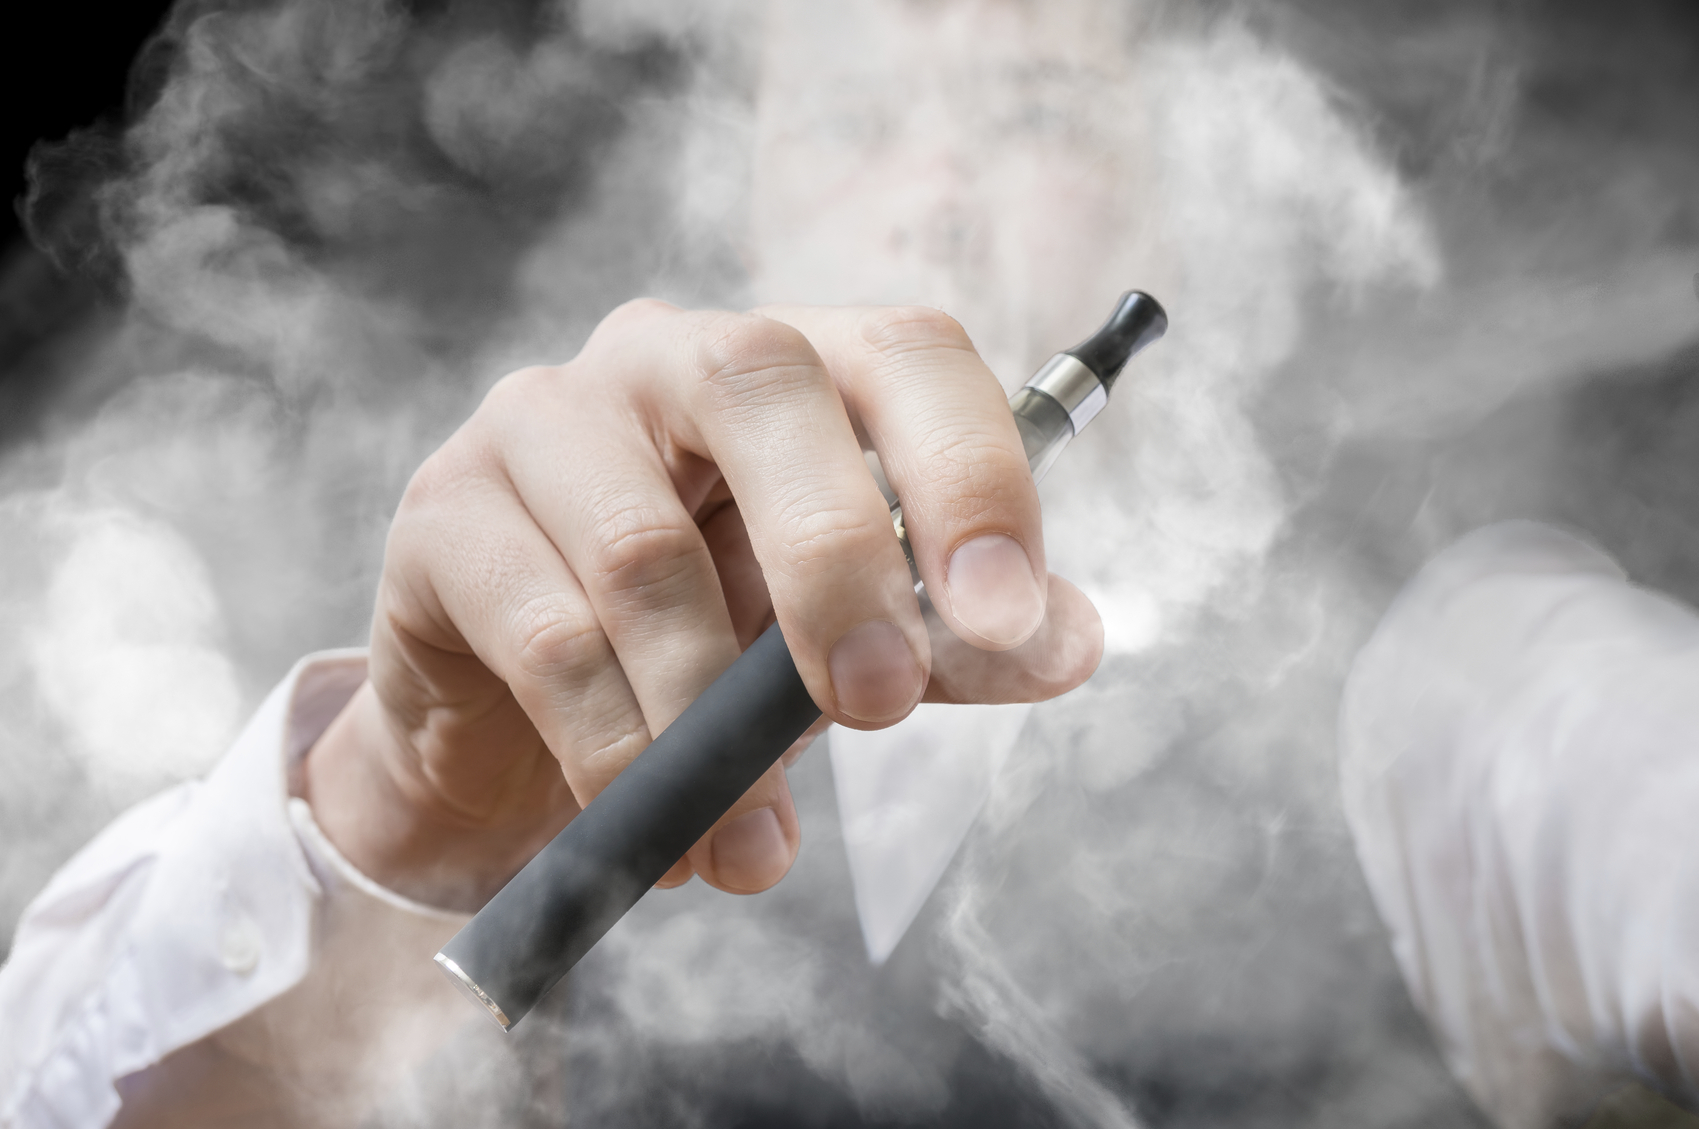 E-cigarettes: Good news, bad news - Harvard Health Blog